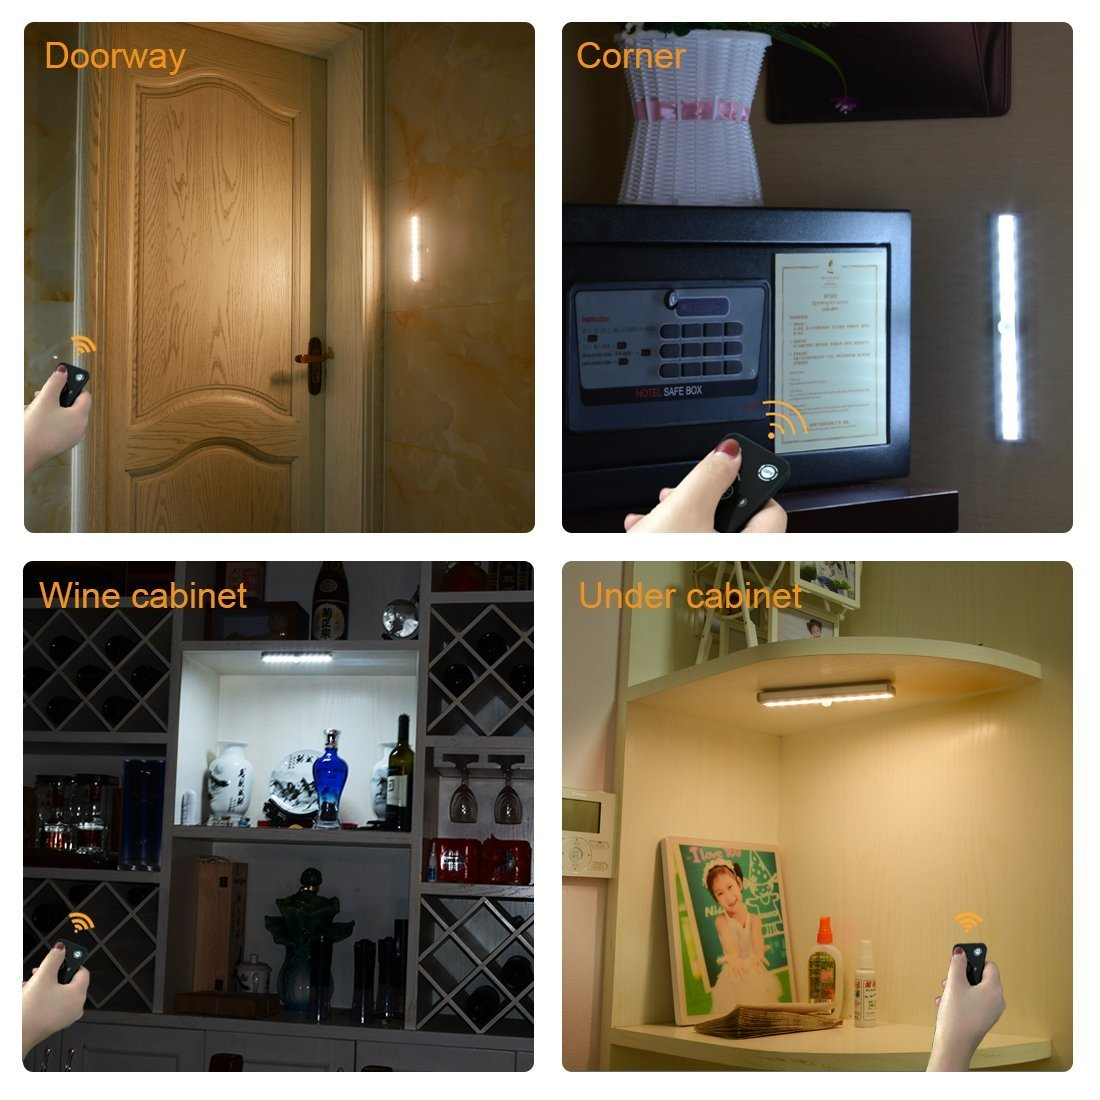 LDOPTO Under Cabinet Lights 4 Pack LED Closet Light with Remote